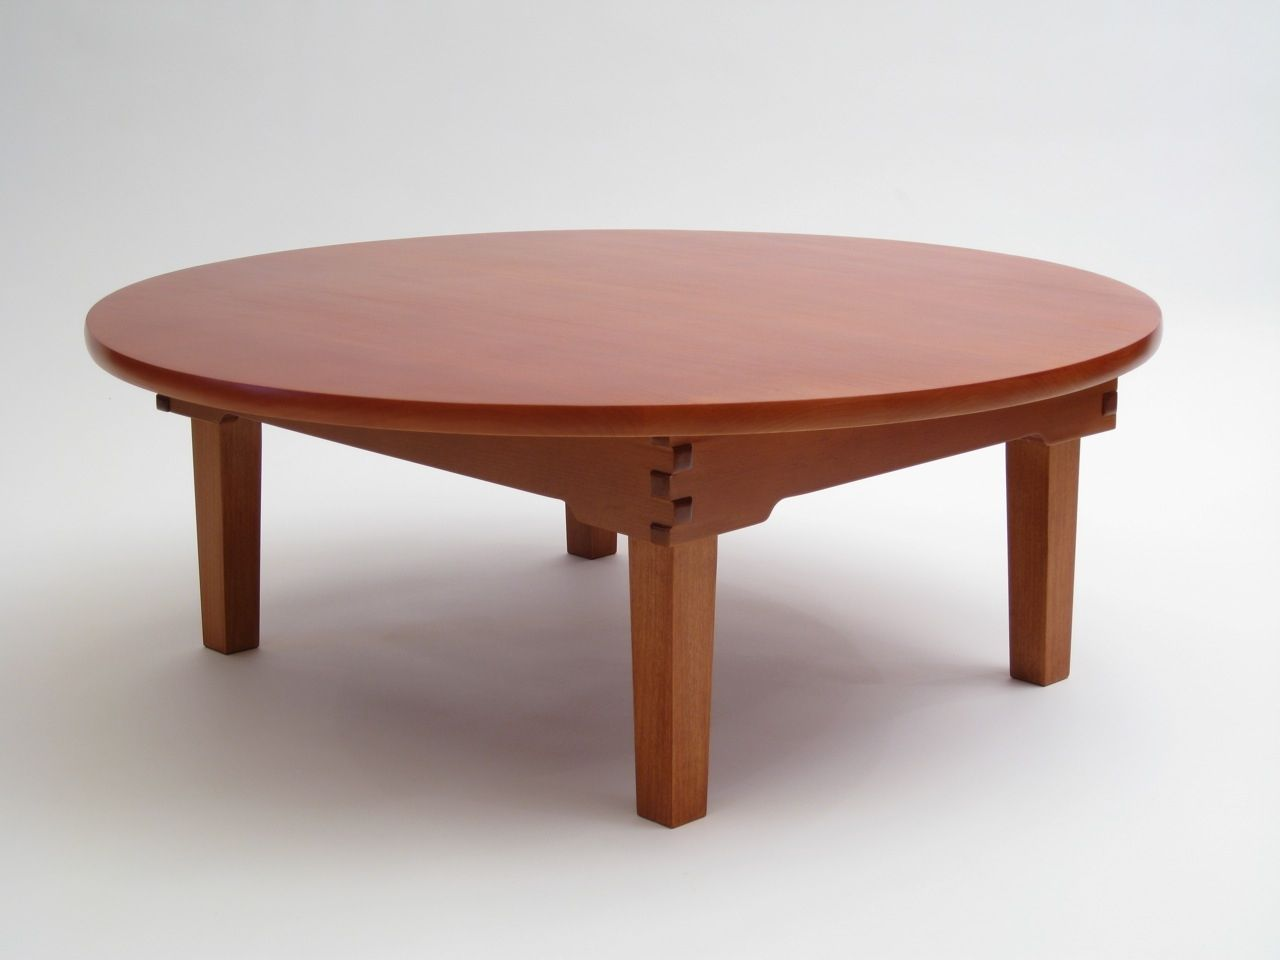 Japanese tea table dimensions - Custom Made Japanese Chabudai A Low Folding Table By Dogwood Design Make This But